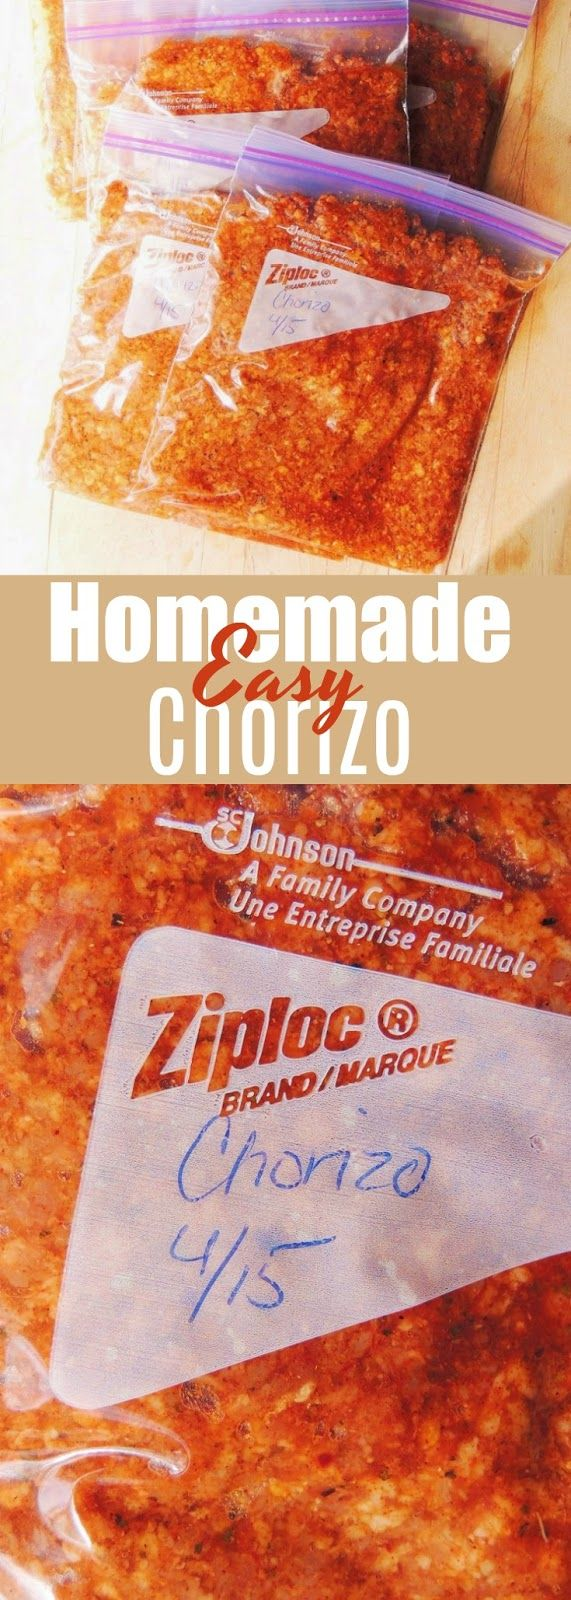 Healthy Homemade Chorizo - Authentic tasting homemade chorizo is simple to make, and much healthier than the commercially prepared kind! From www.bobbiskozykitchen.com